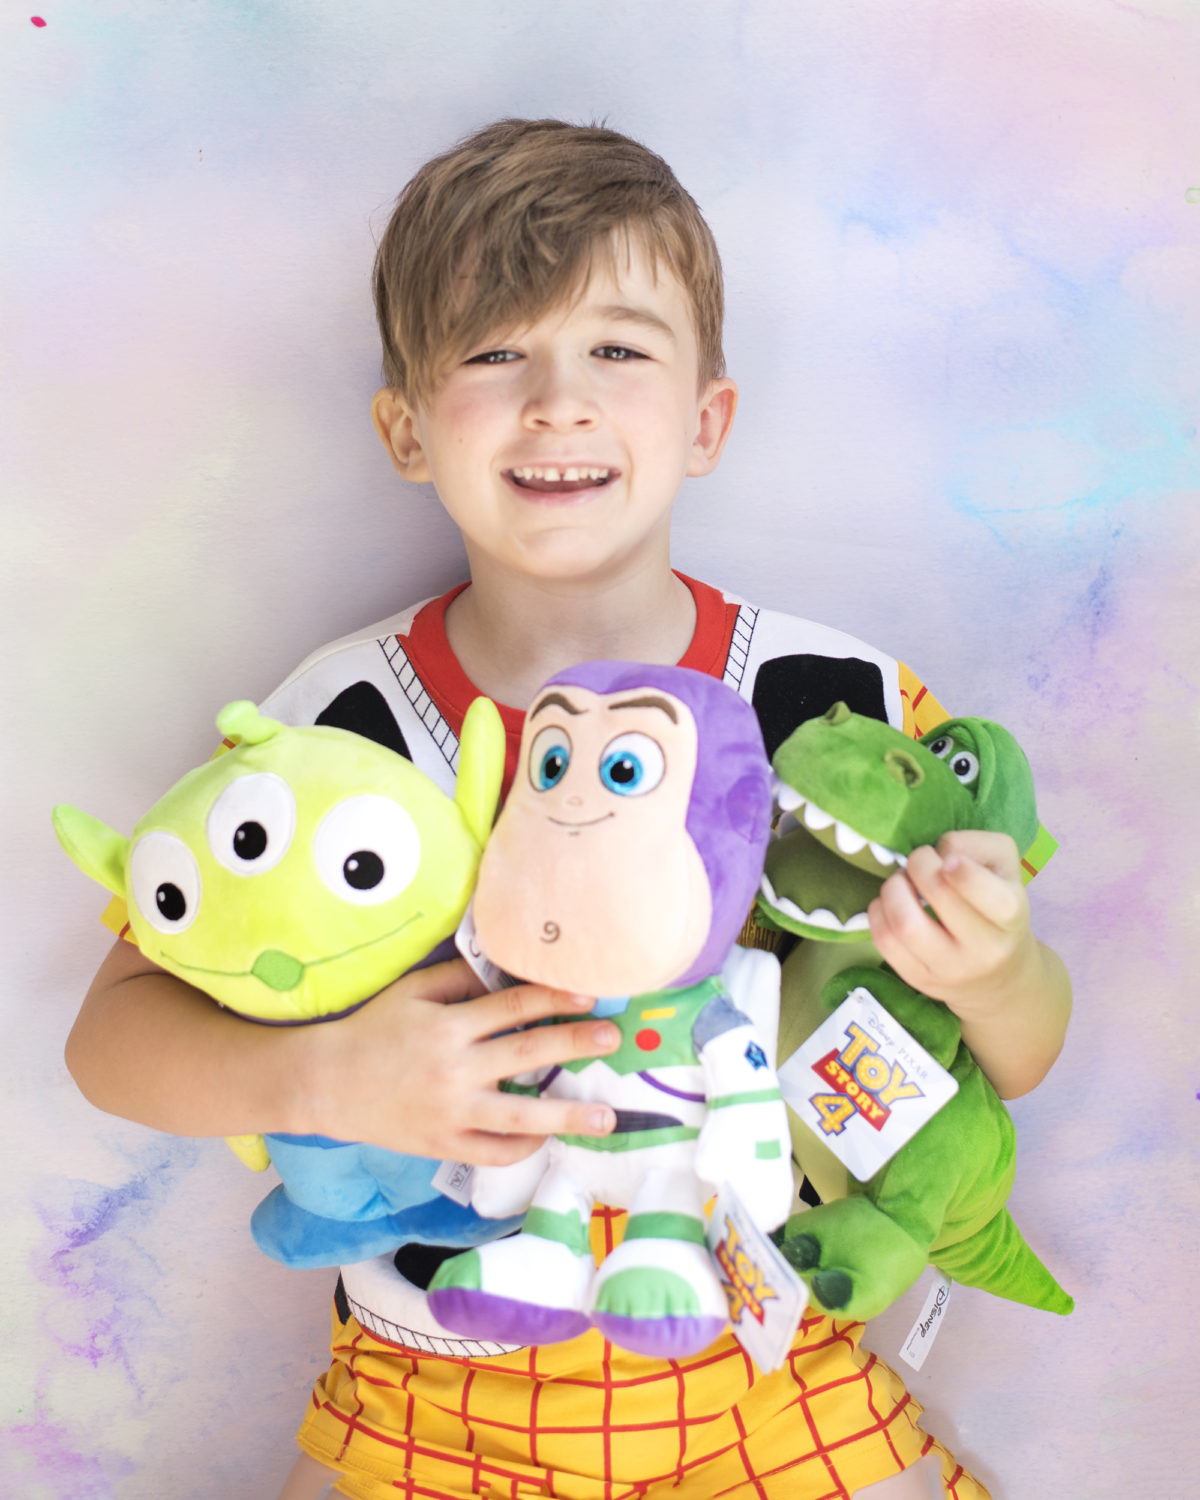 Image shows a young boy dressed in a Disney's Toy Story Woody t-shirt from NEXT, colding three Disney Pixar's Toy Story characters in his arms - Dinosaur, Rex, Buzz Lightyear and an Alien as plush toys from SImba Toys. Image by Keep Up With The Jones Family.